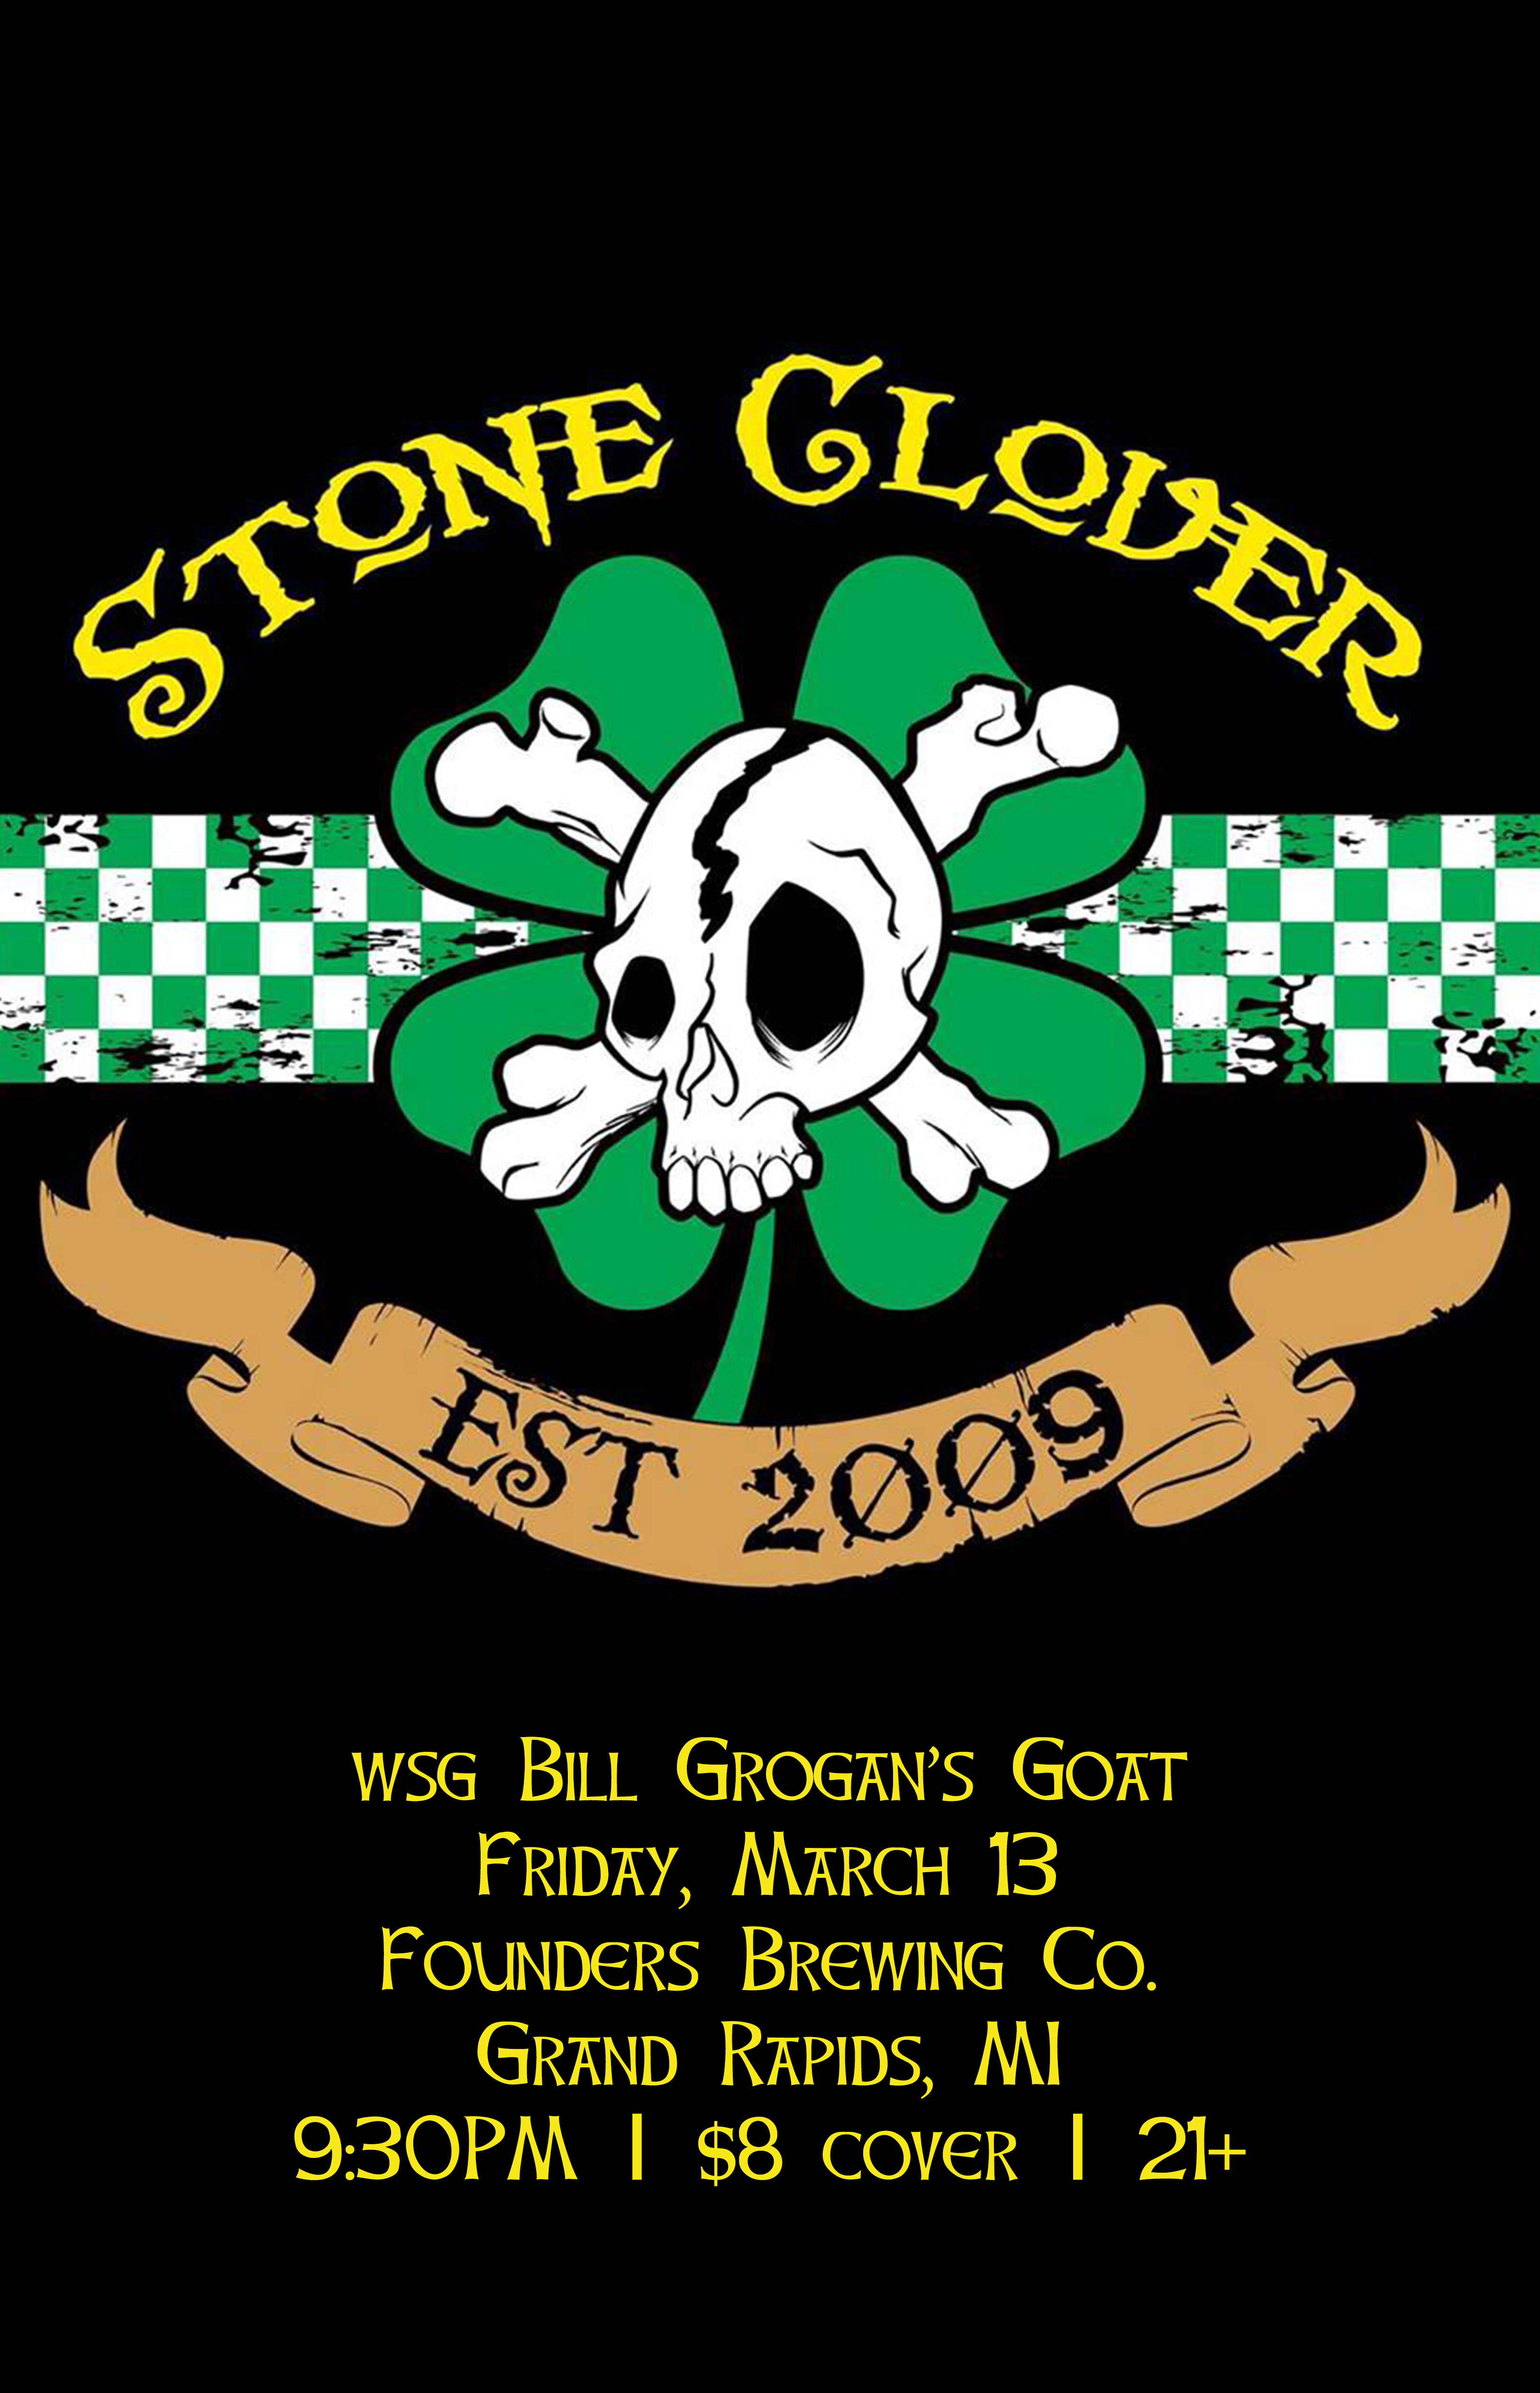 Stone Glover event poster hosted by Founders Brewing Co. in Grand Rapids